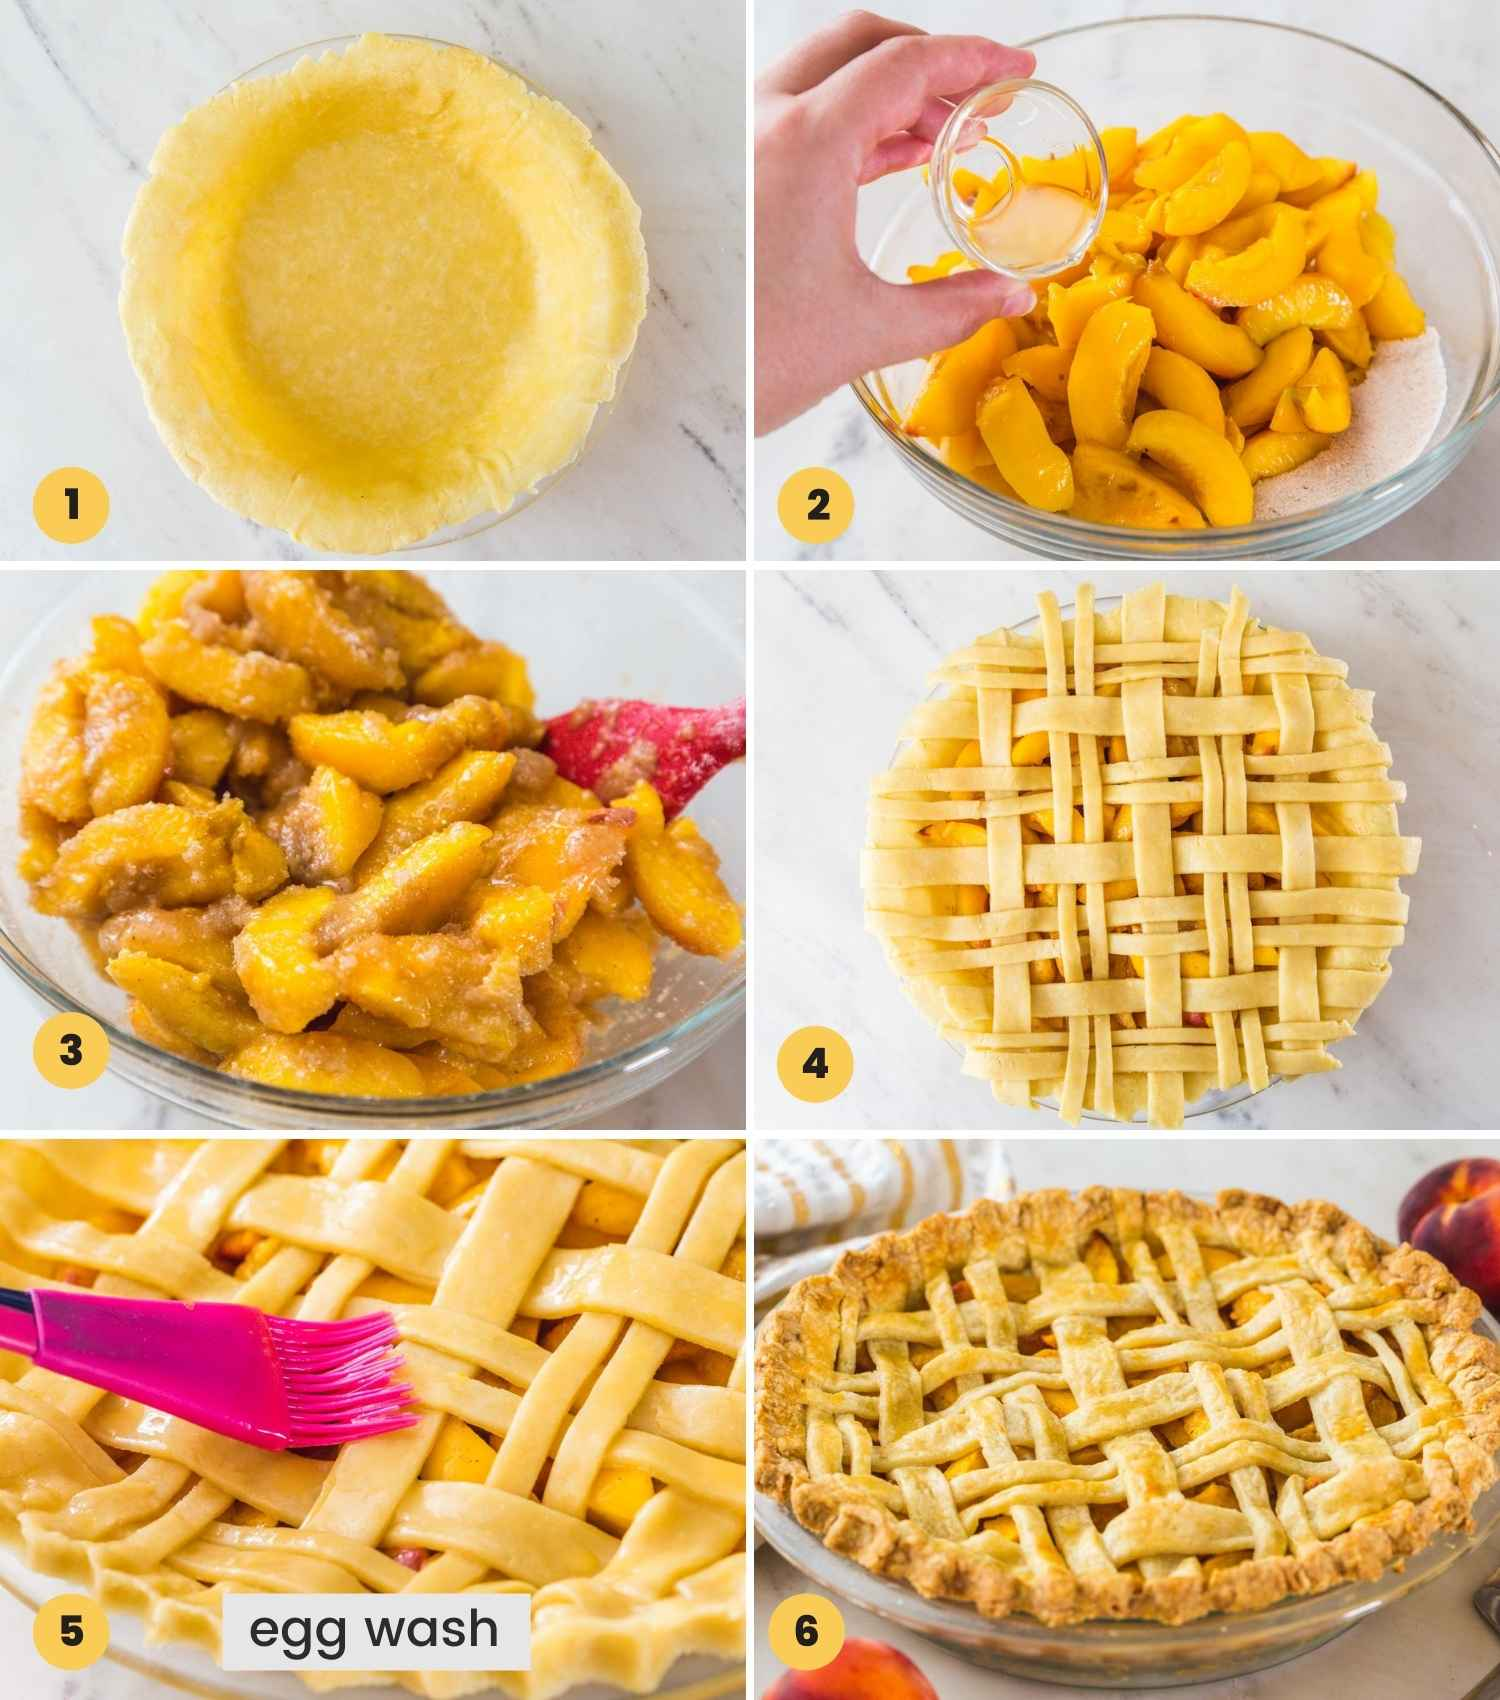 Steps showing how to make a peach pie